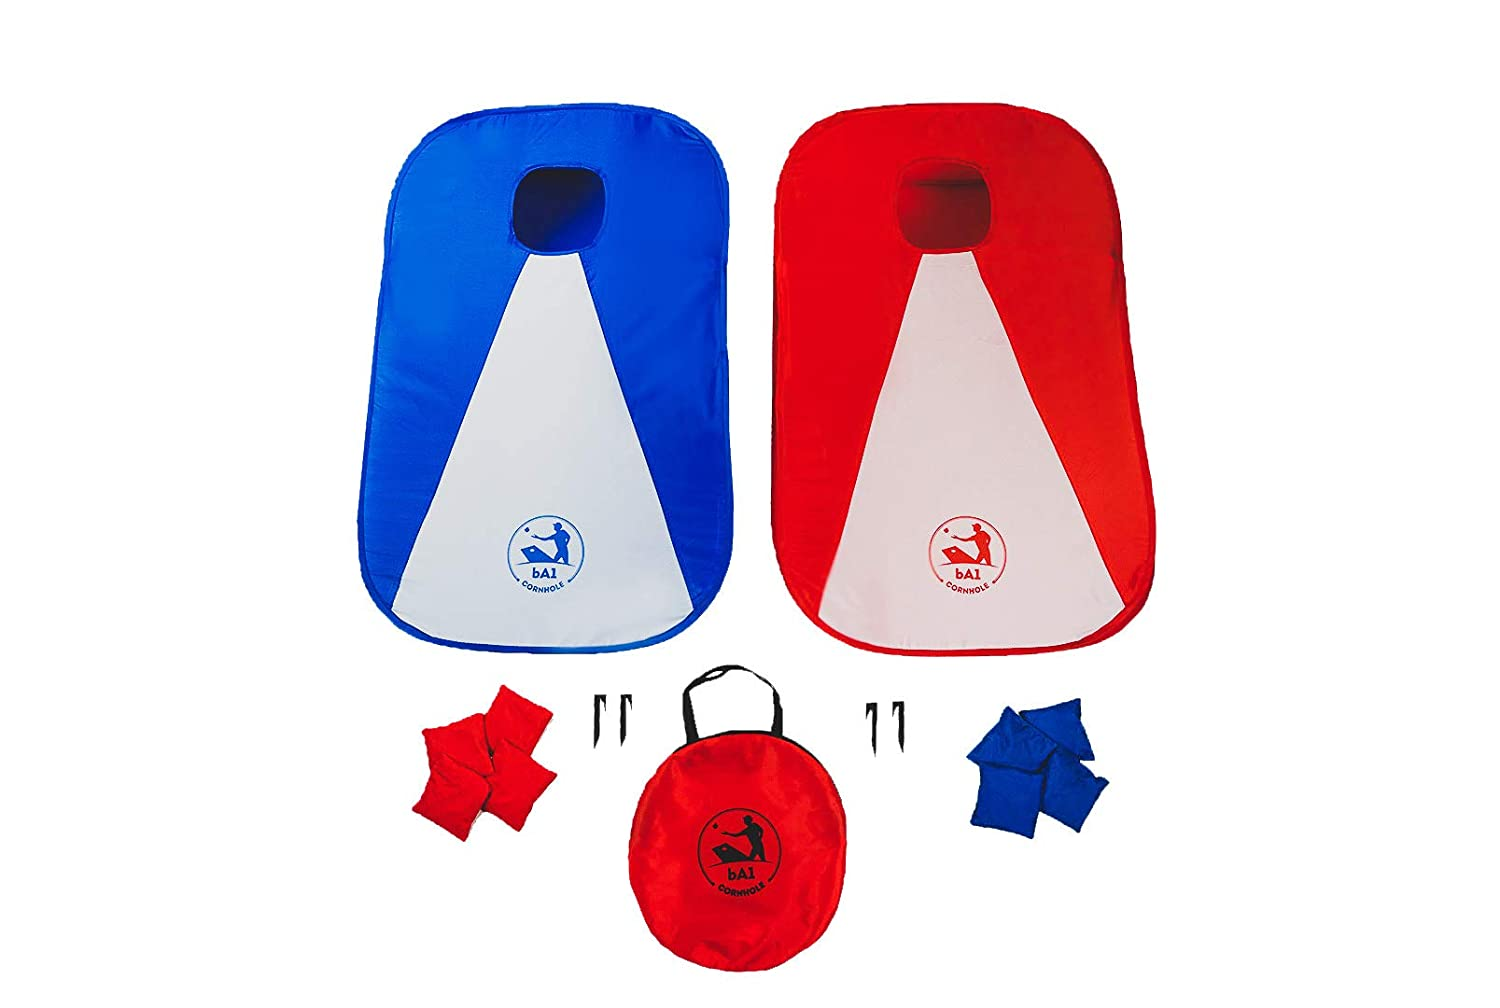 bA1 Cornhole - All Weather Collapsible Portable Cornhole Game Set - 2 Boards + 8 Beanbags + Carrying Case + Stakes (3' x 2') Now Play Anywhere, Anytime, Even on The Go - Indoor Outdoor! WeWin Sports